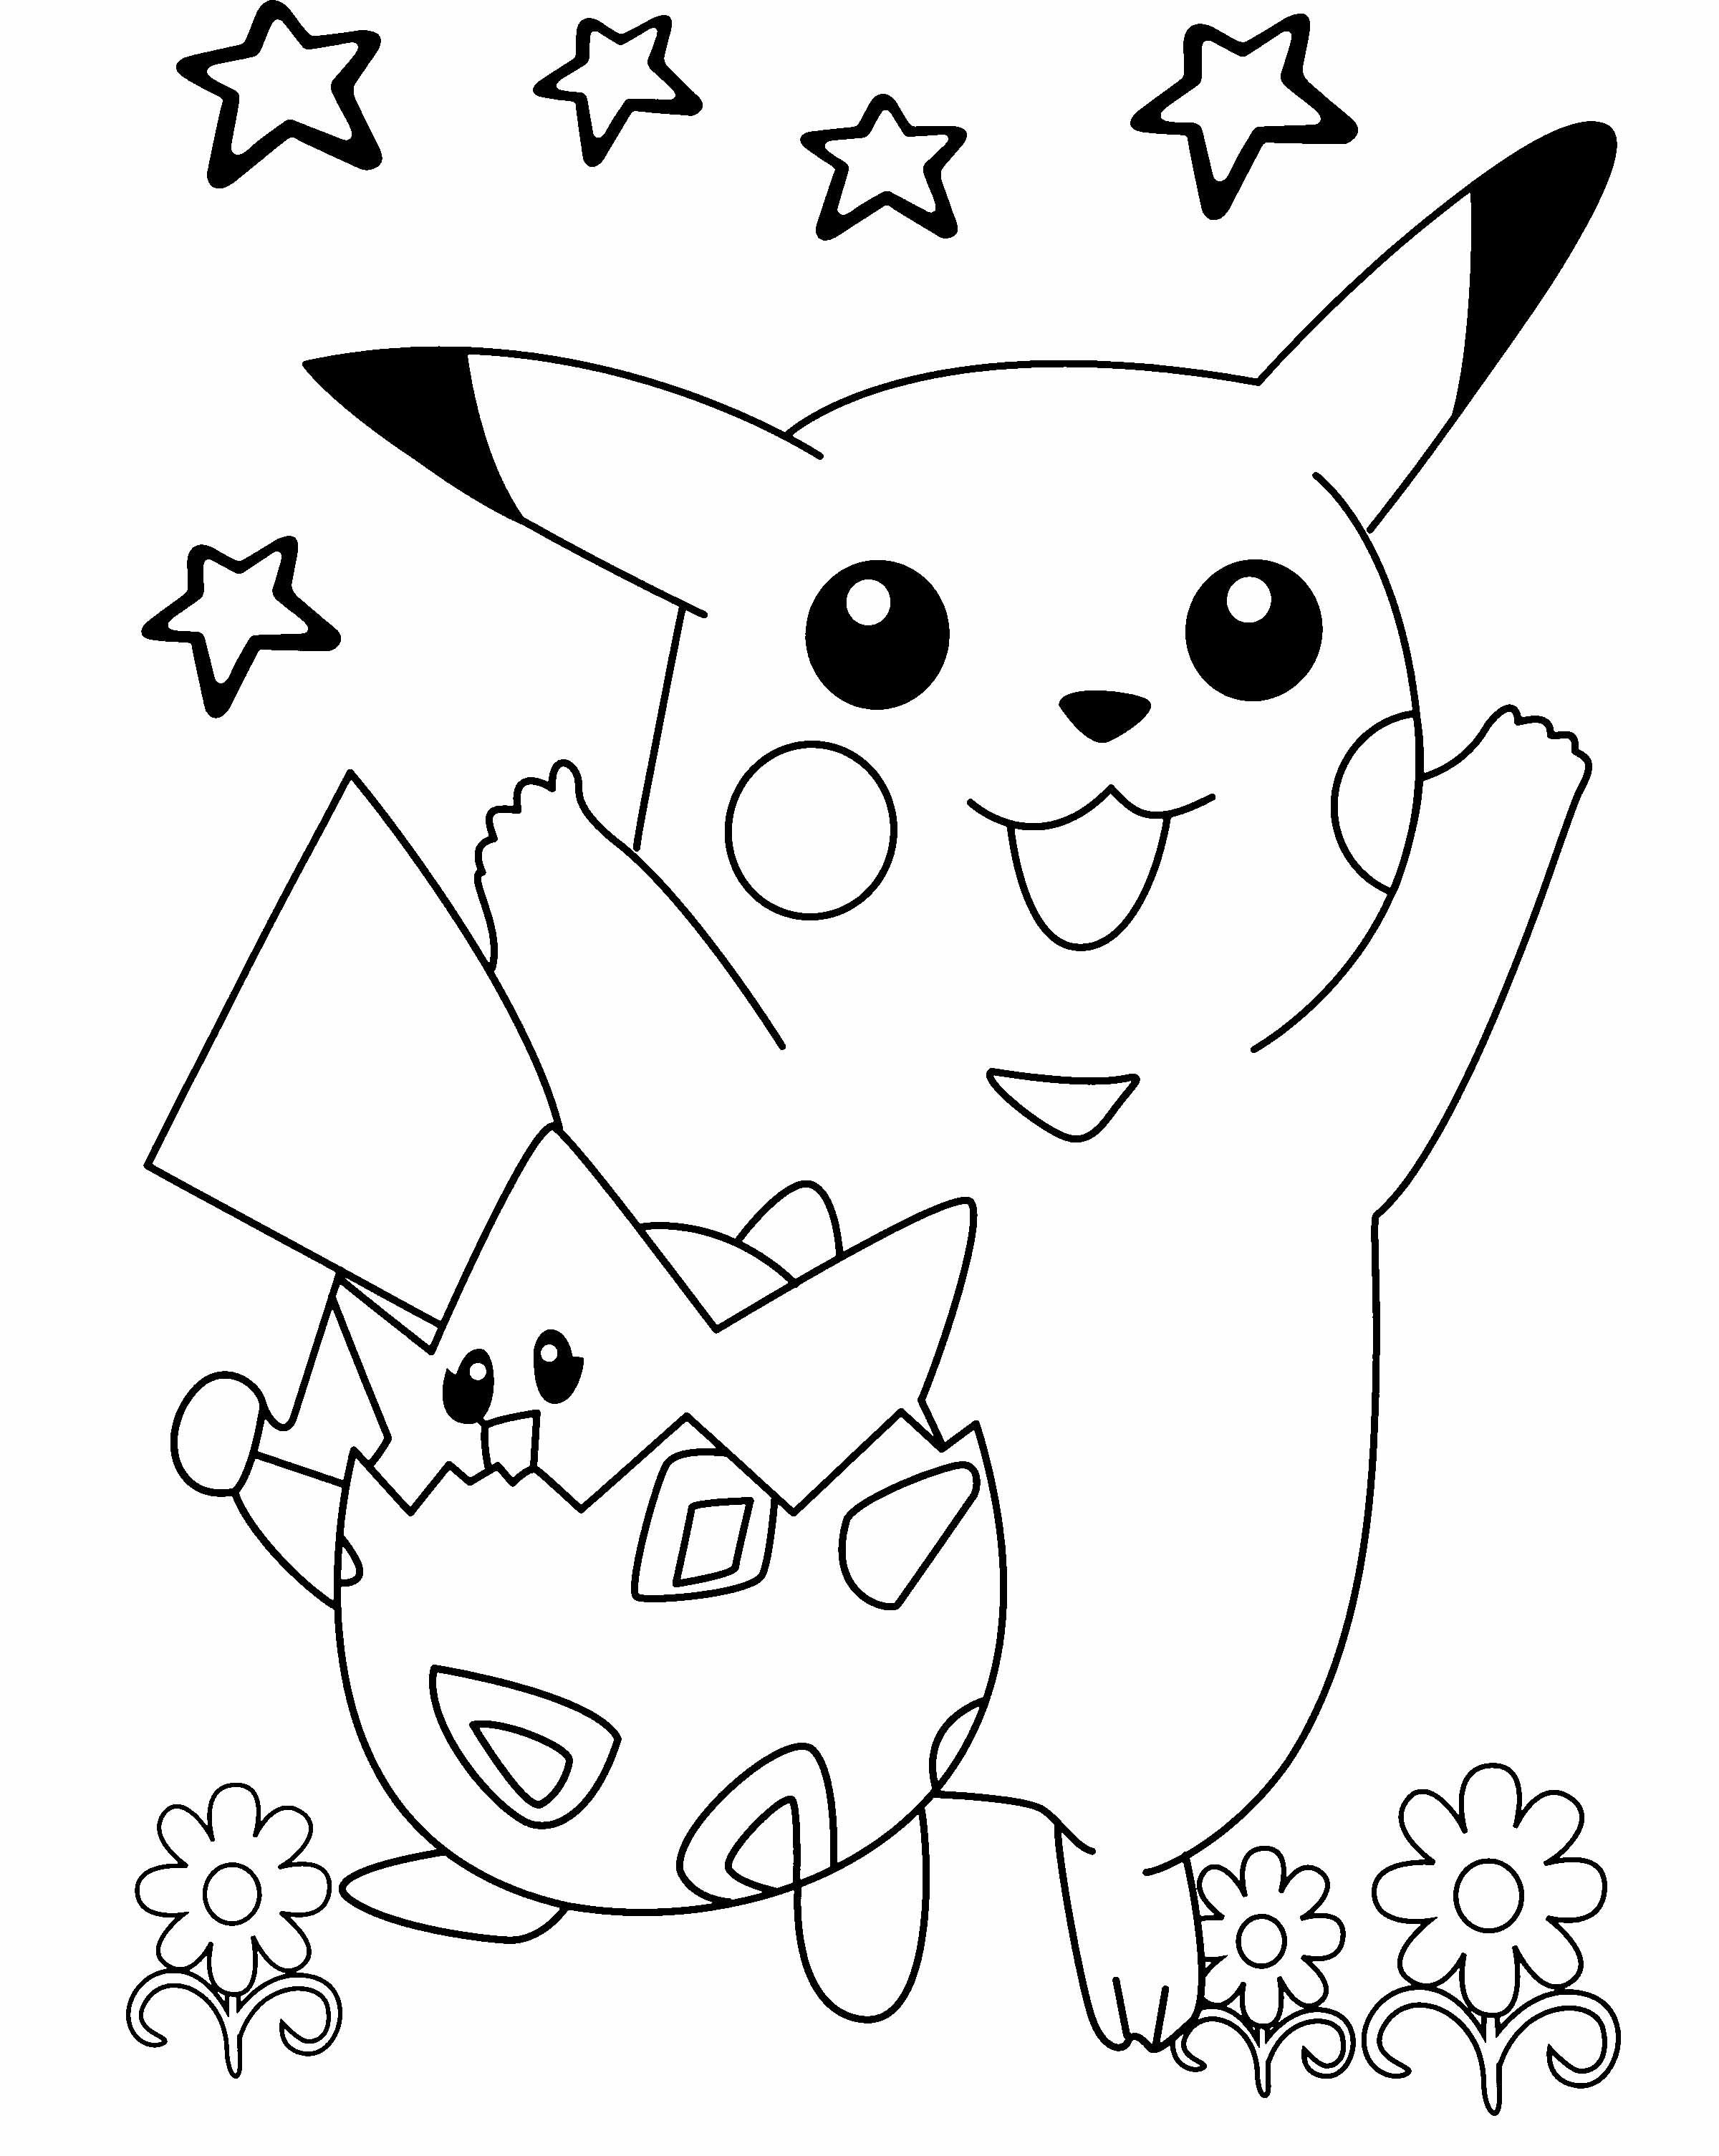 pokemon coloring pages flabebe flower - photo#28